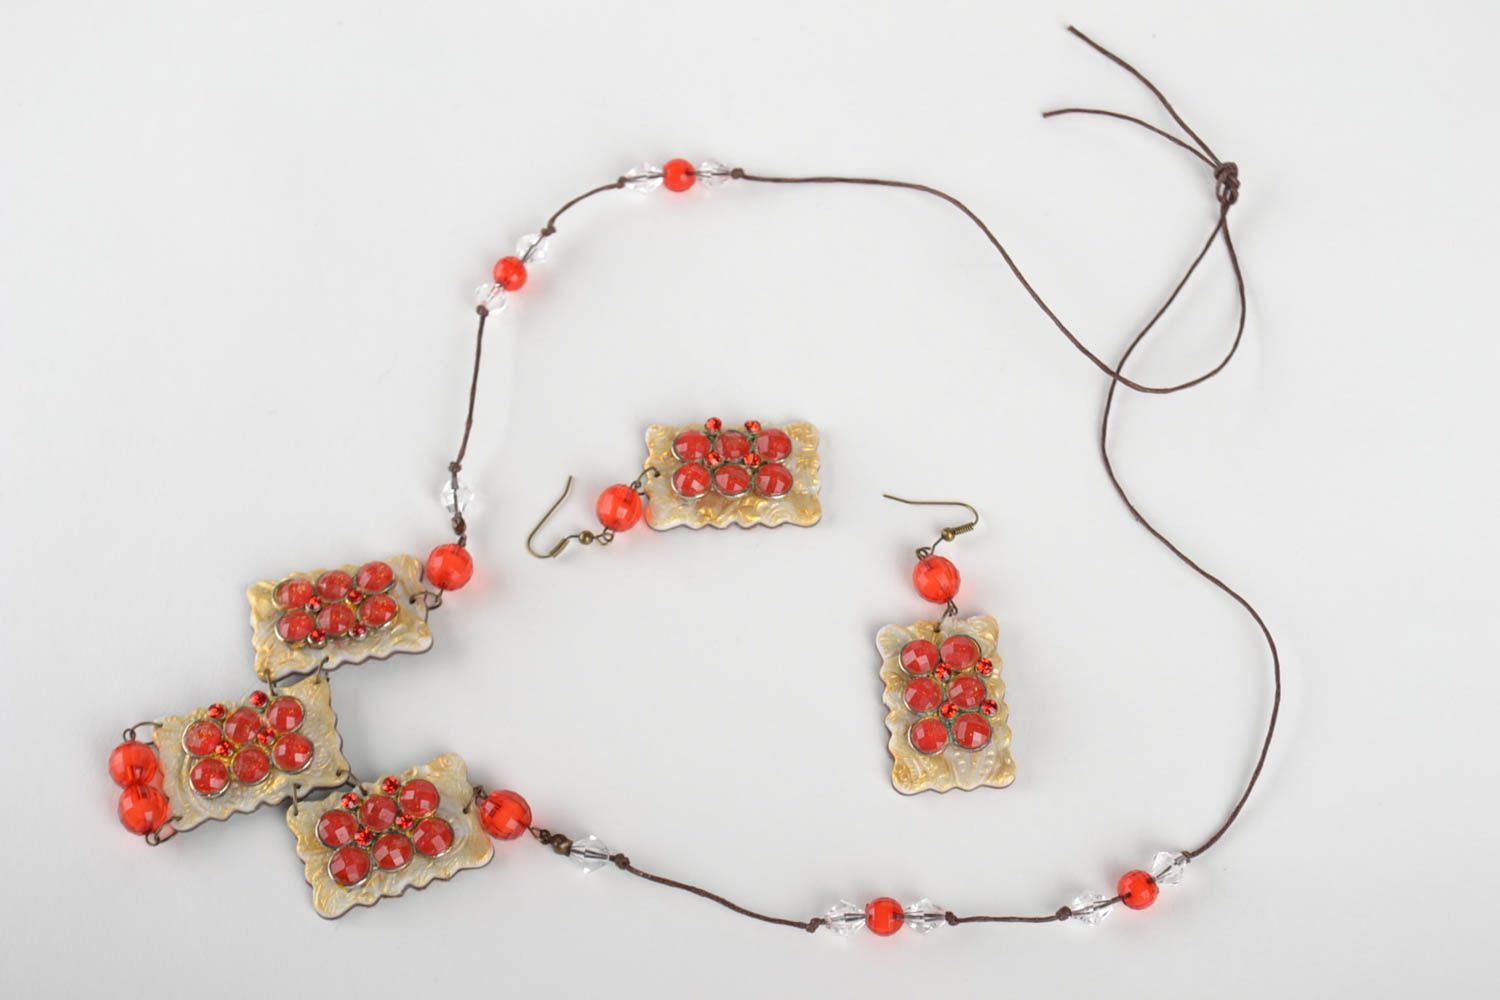 Polymer clay jewelry set handmade earrings pendant necklace fashion accessories photo 2